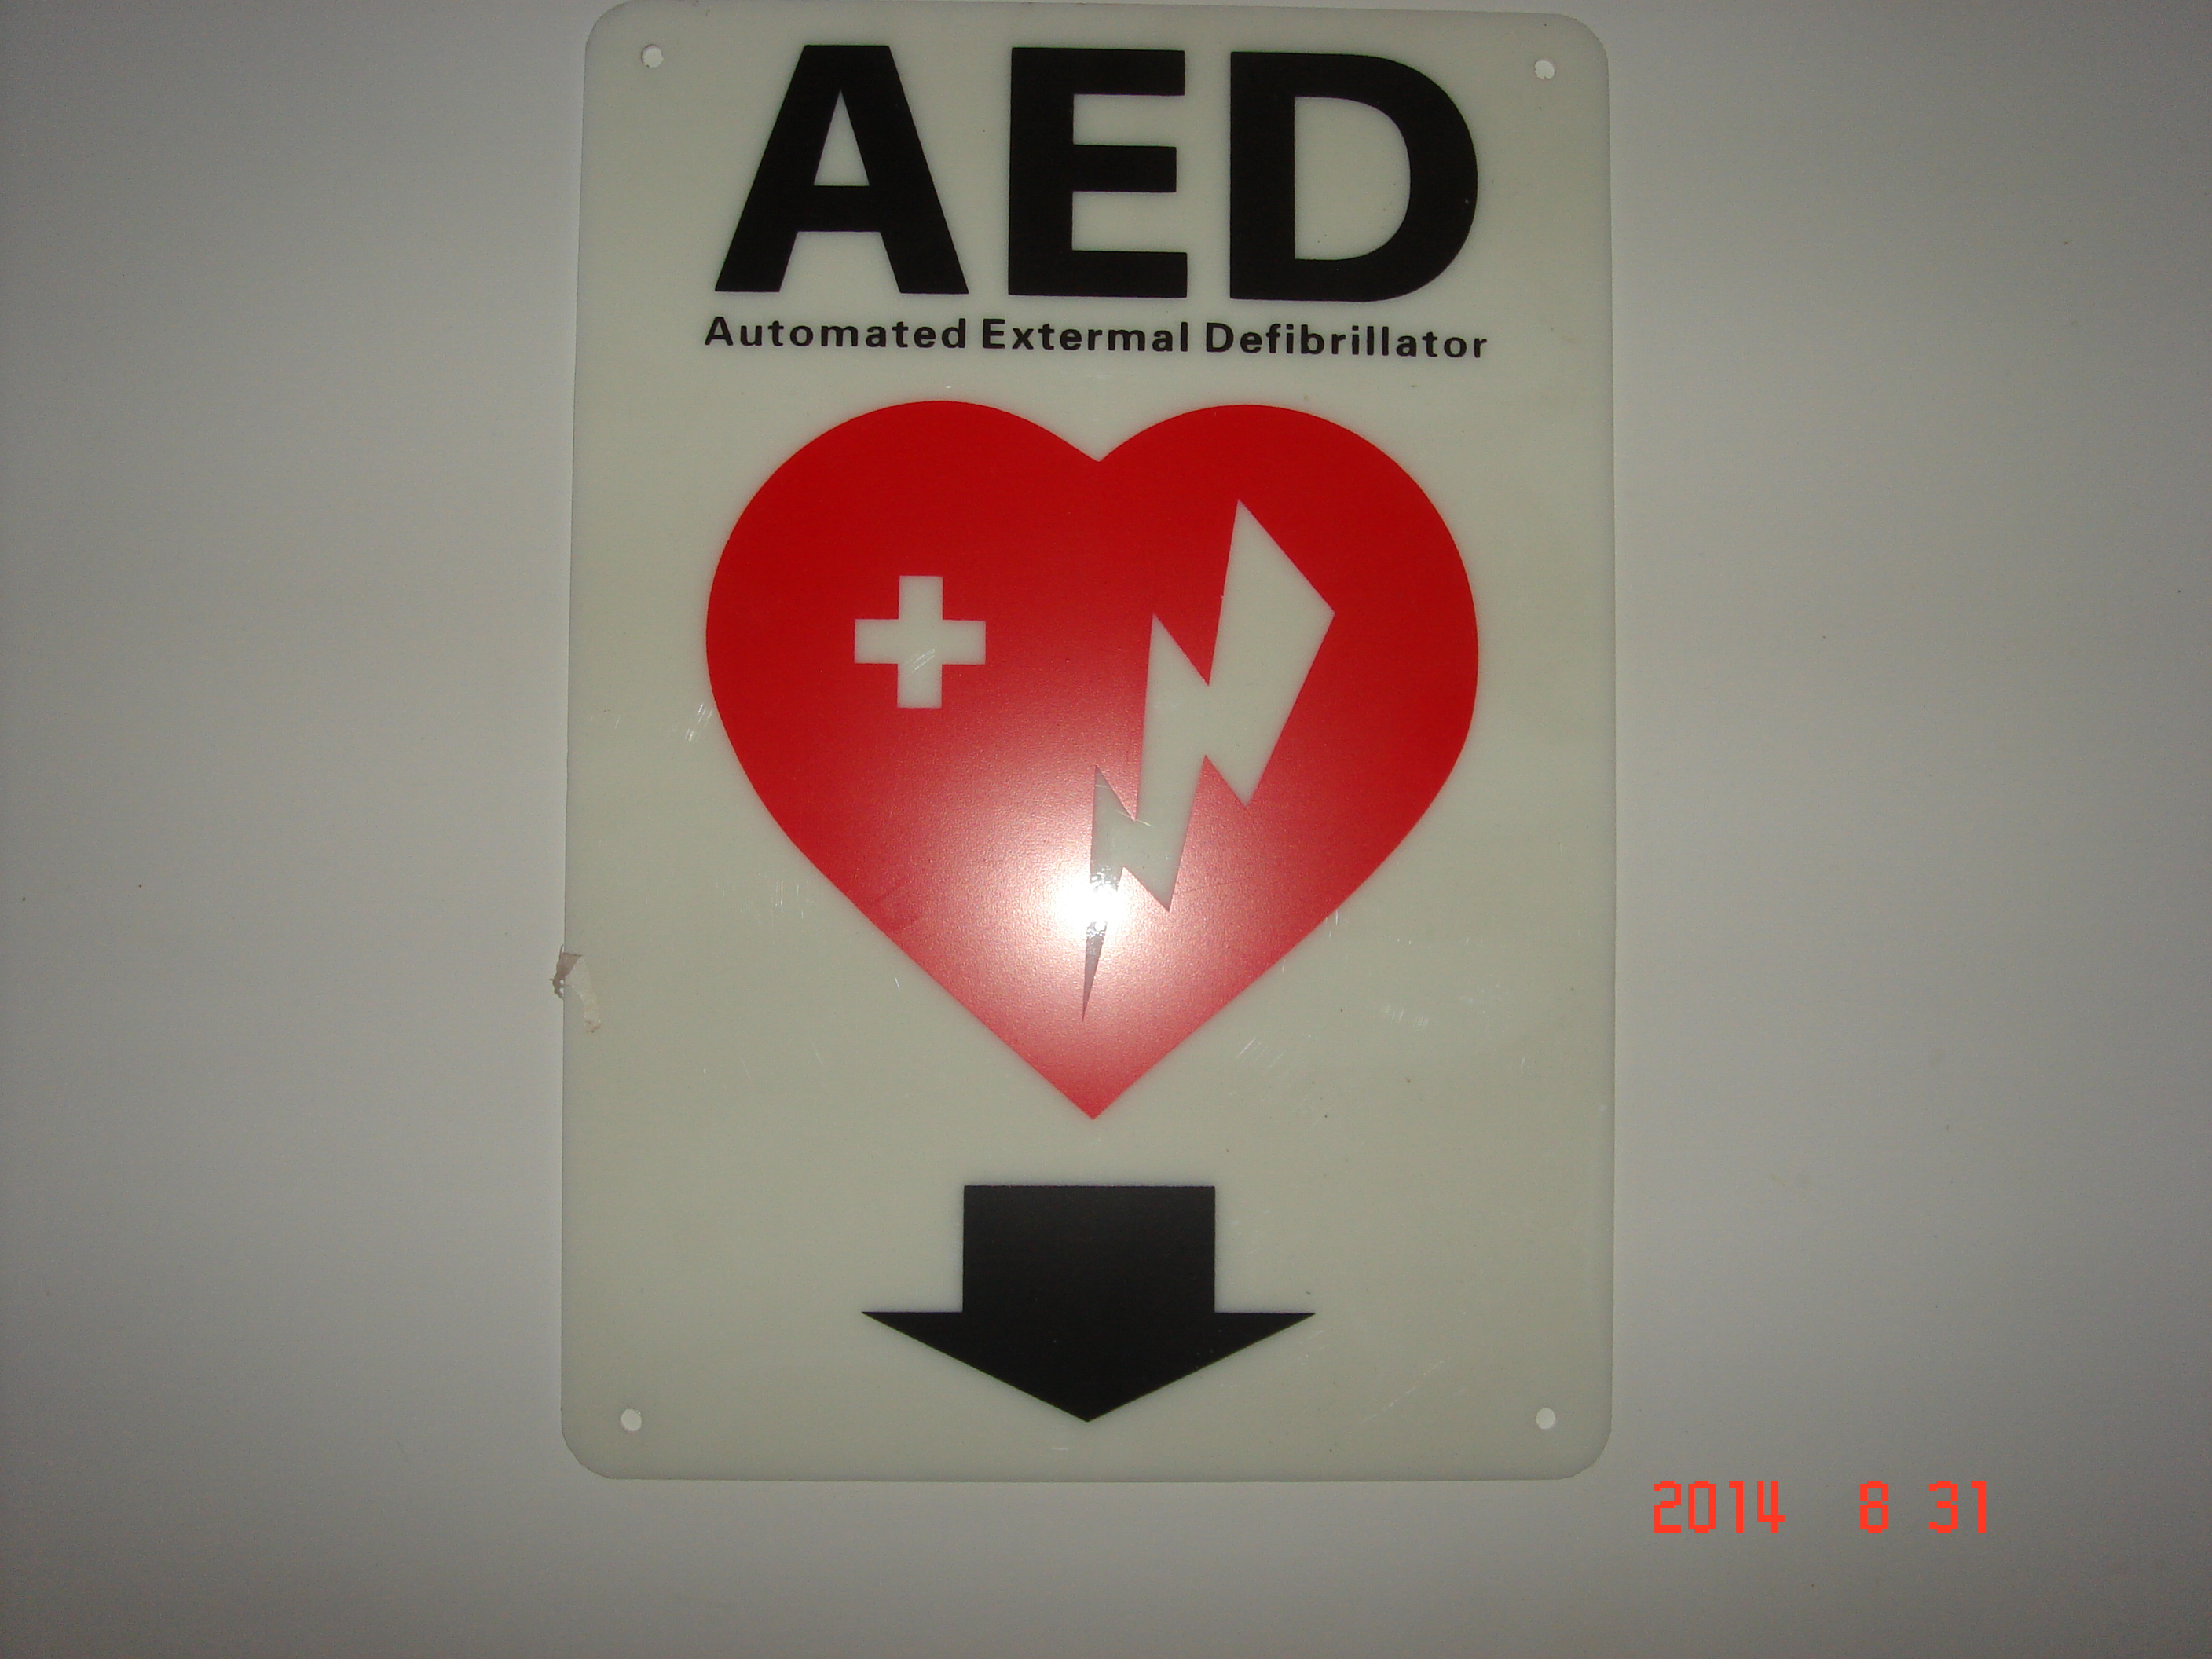 Flat AED wall sign #2Web site store pictures 028